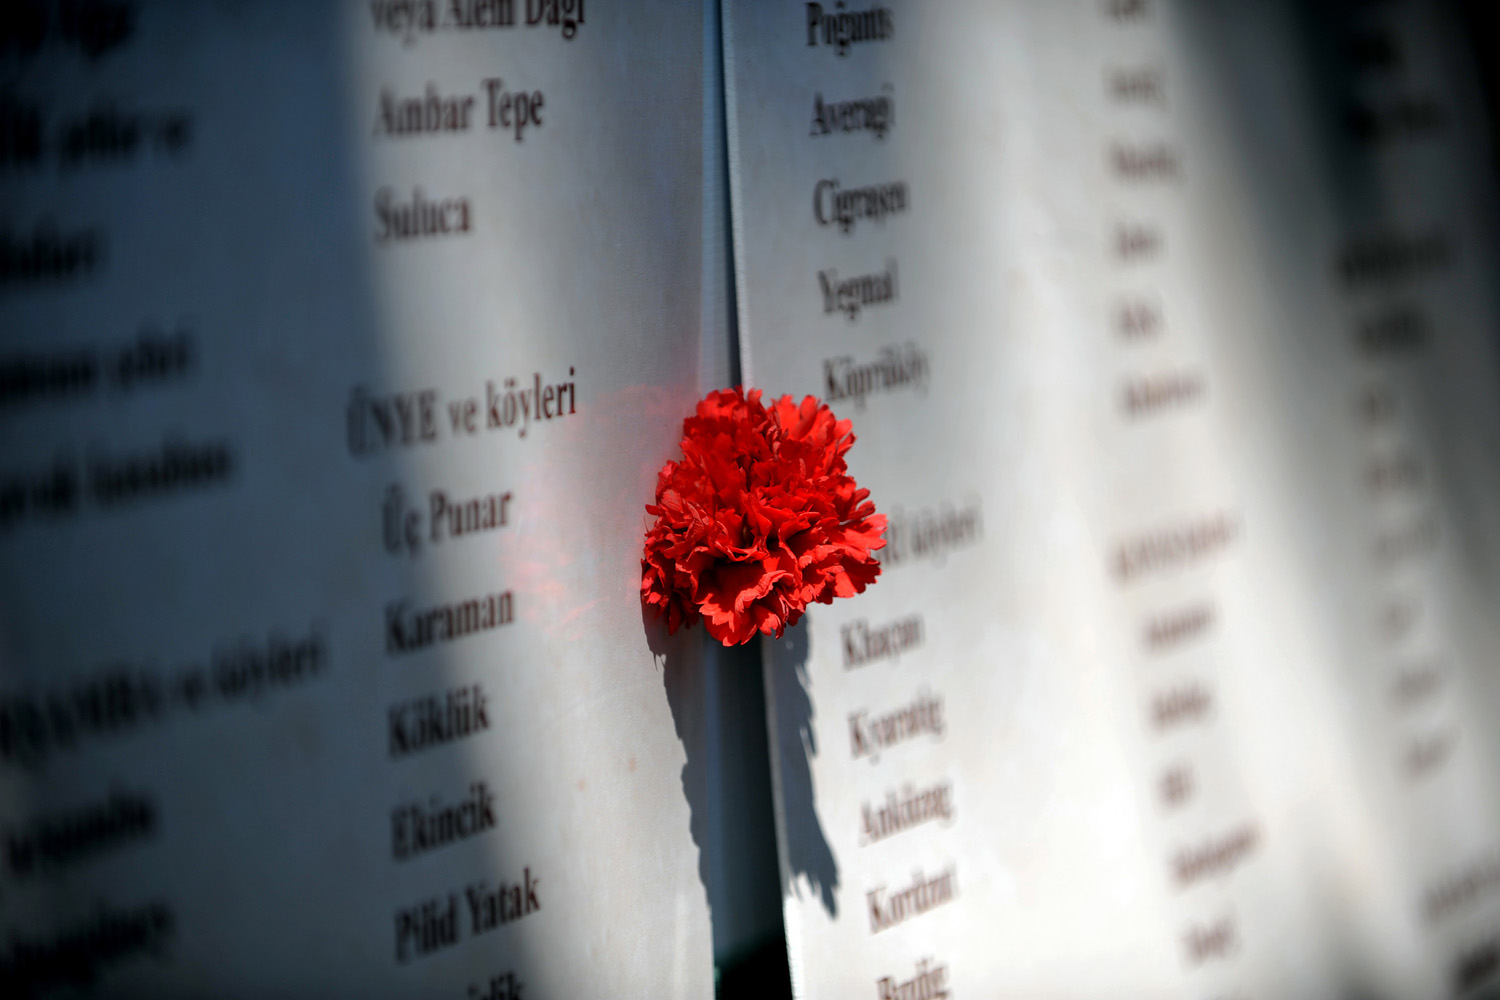 April 24, 2013. A carnation is placed between lists of names during a demonstration on in Istanbul marking the 98th anniversary of the massacre and deportation of Ottoman Armenians during World War I. Armenians claim that around 1.5 million people died and the masacare is described by many countries as genocide although Ankara continues to reject the term.